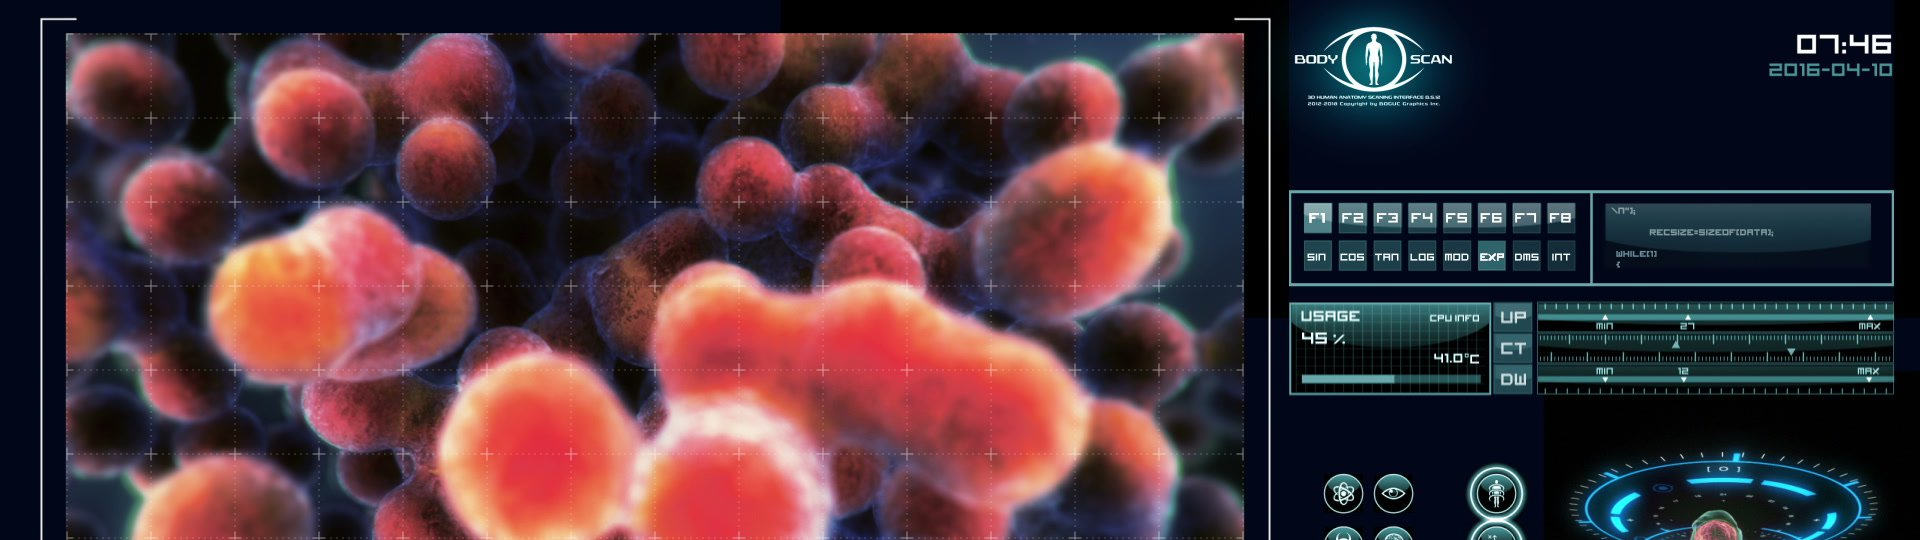 Dynamic cells multiplying | Futuristic medical software interface - ID:18813